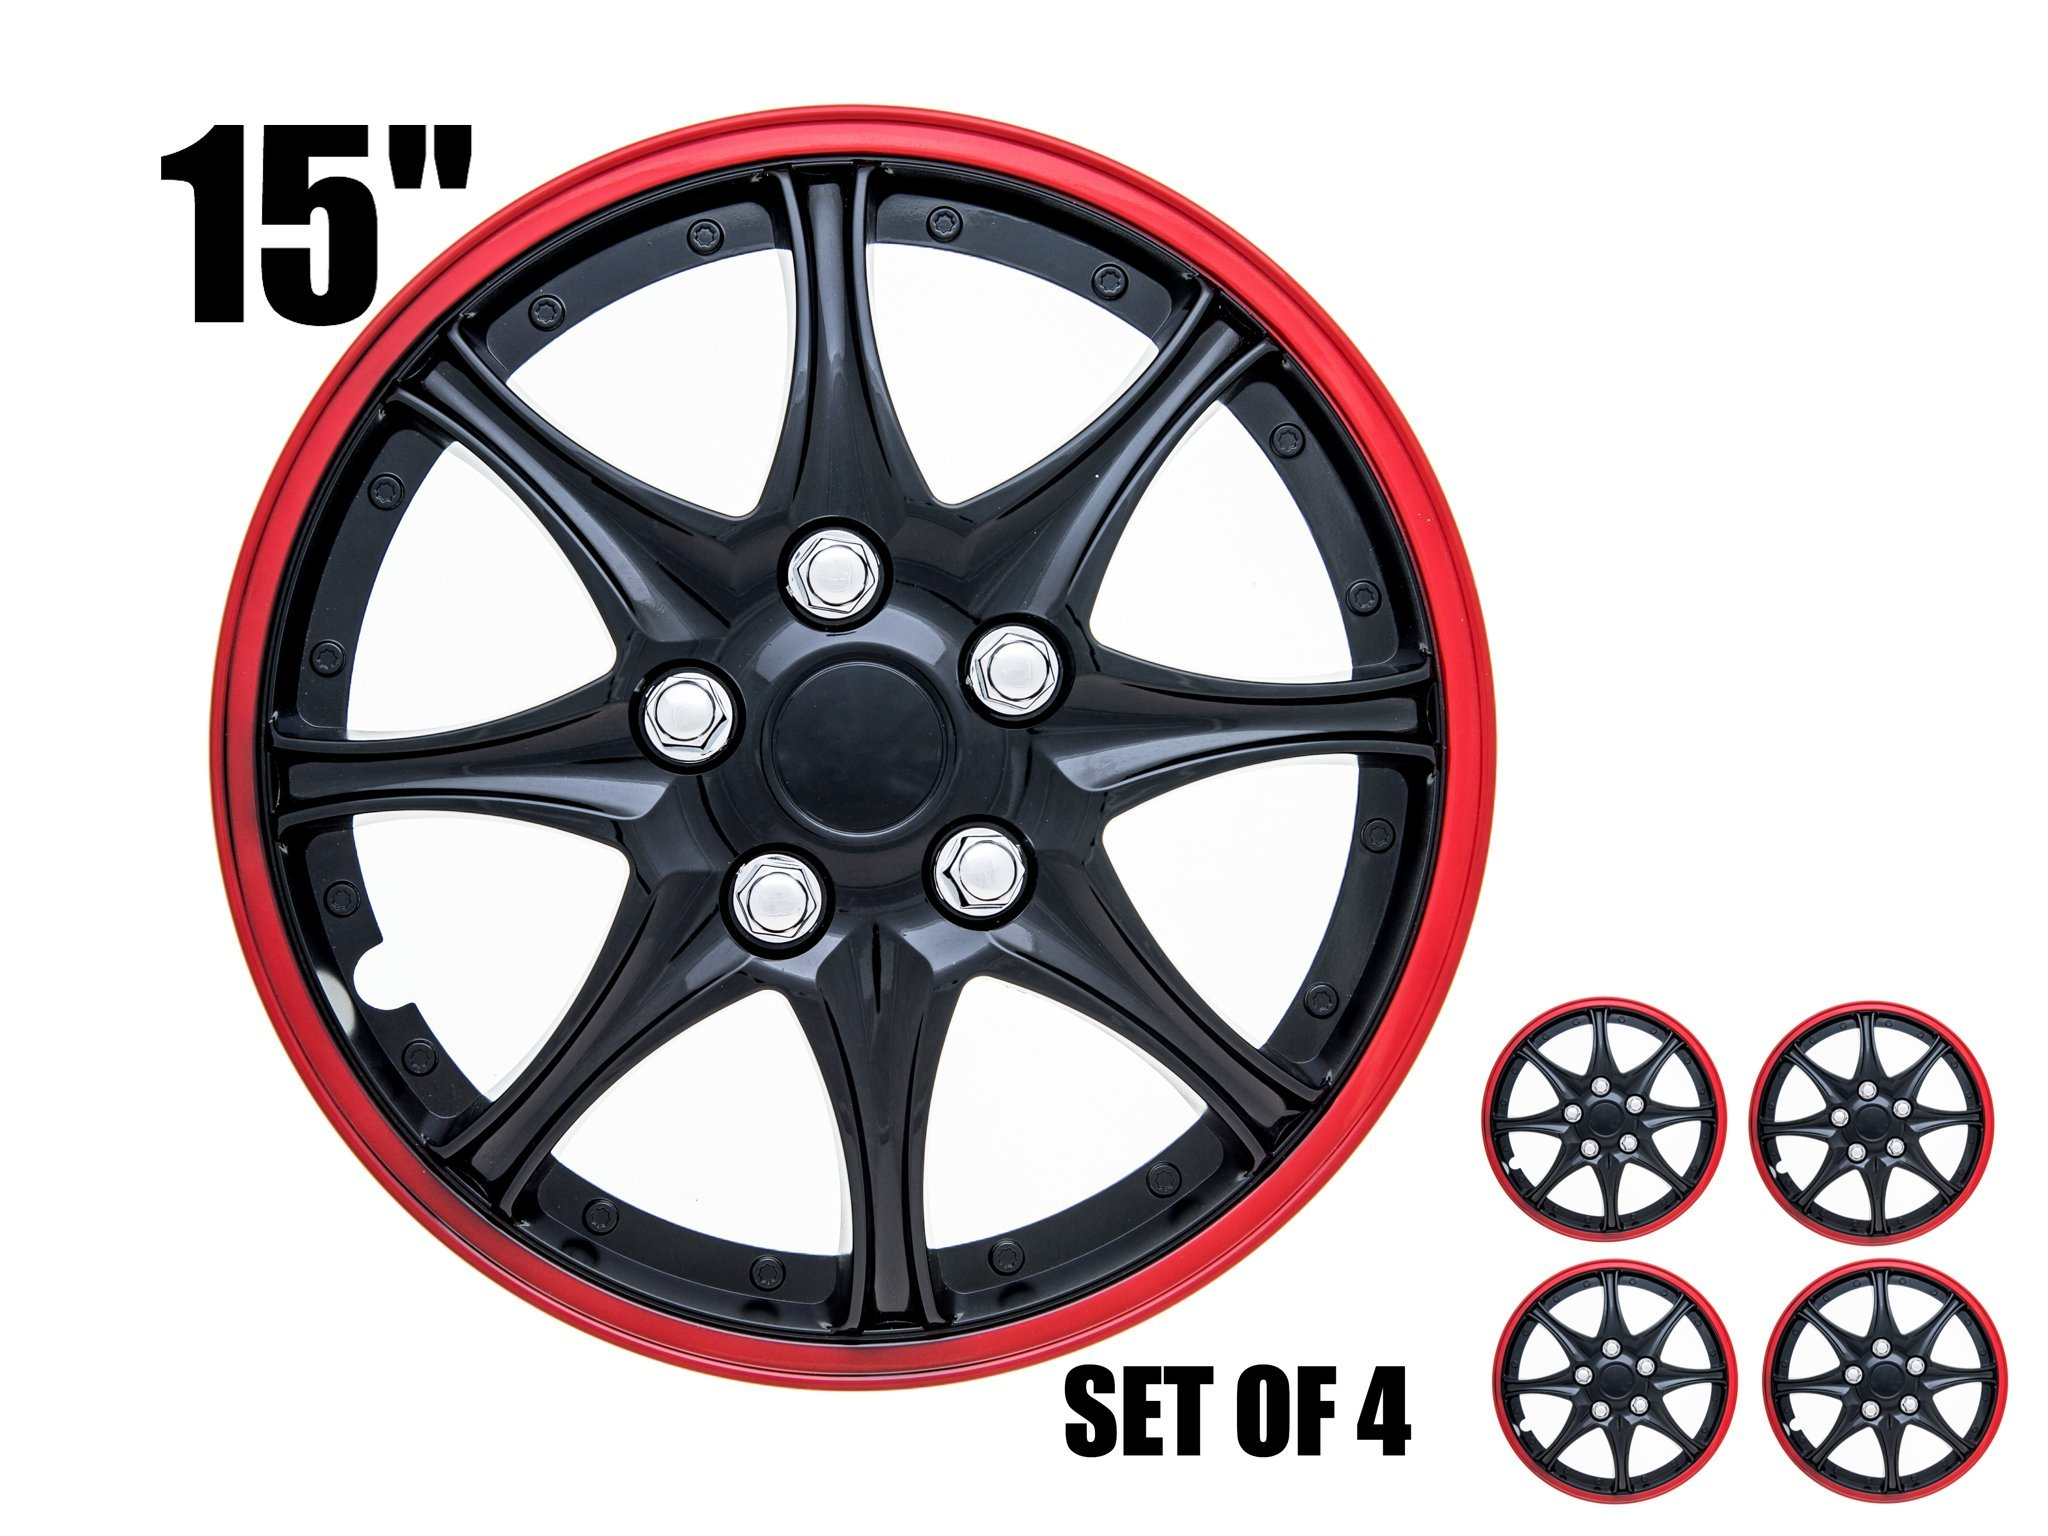 """SPA Hubcaps for Standard Steel Wheels Wheel Covers (Snap On) (Pack of 4) (Fits 15"""" Inch Wheel, Blue & Black)"""